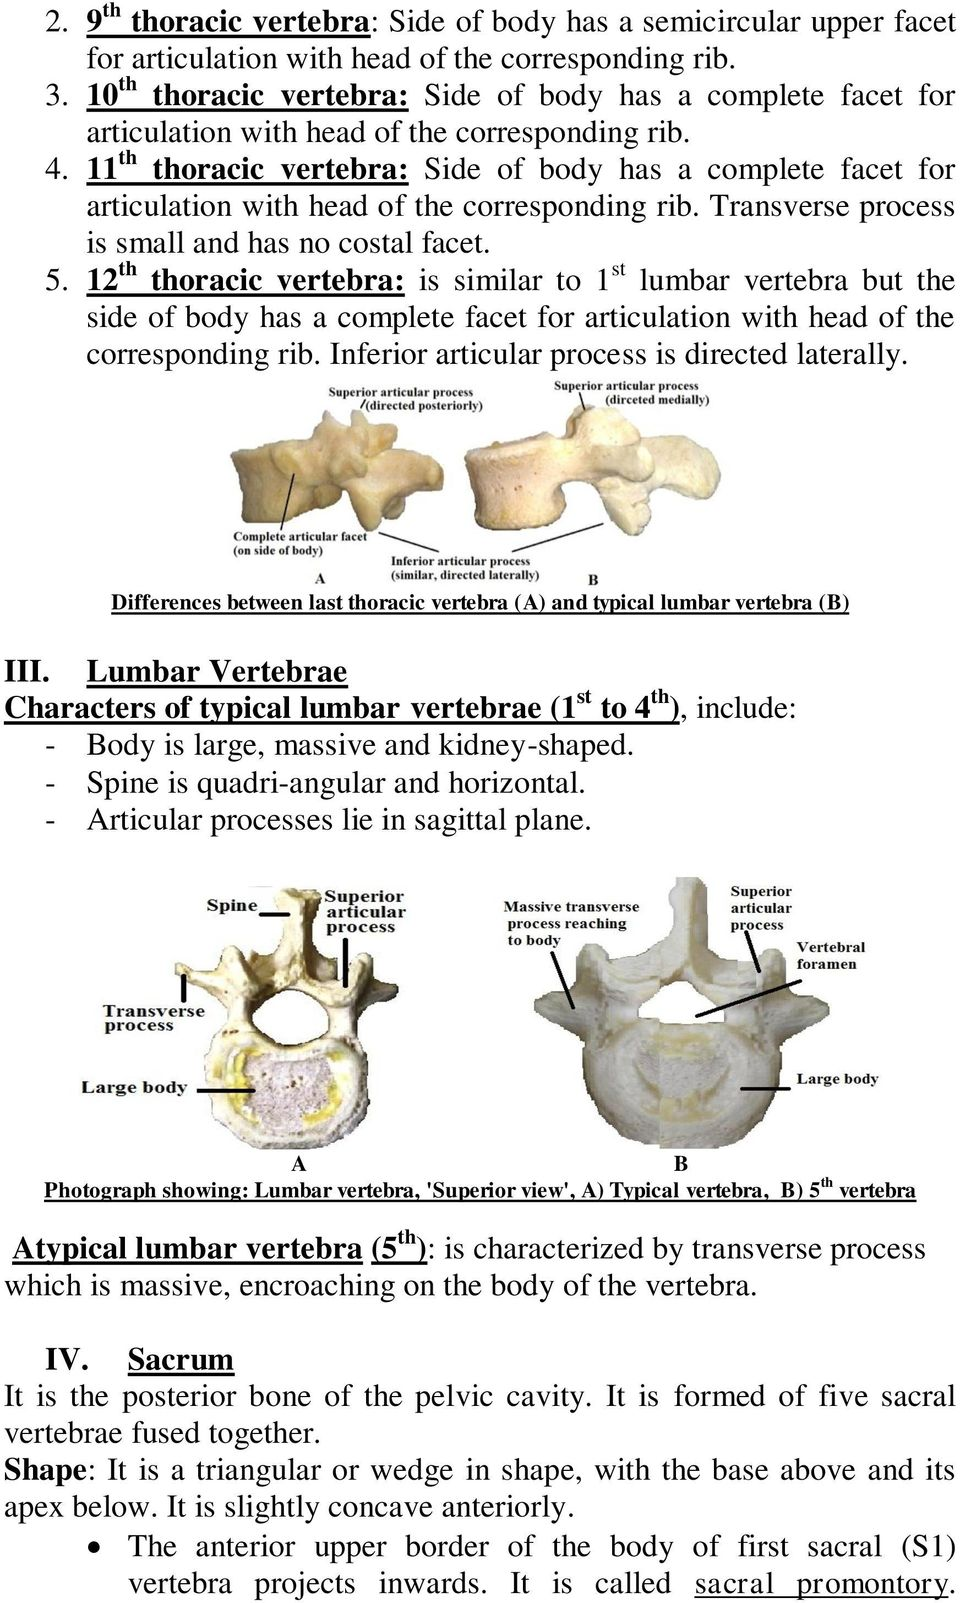 11 th thoracic vertebra: Side of body has a complete facet for articulation with head of the corresponding rib. Transverse process is small and has no costal facet. 5.